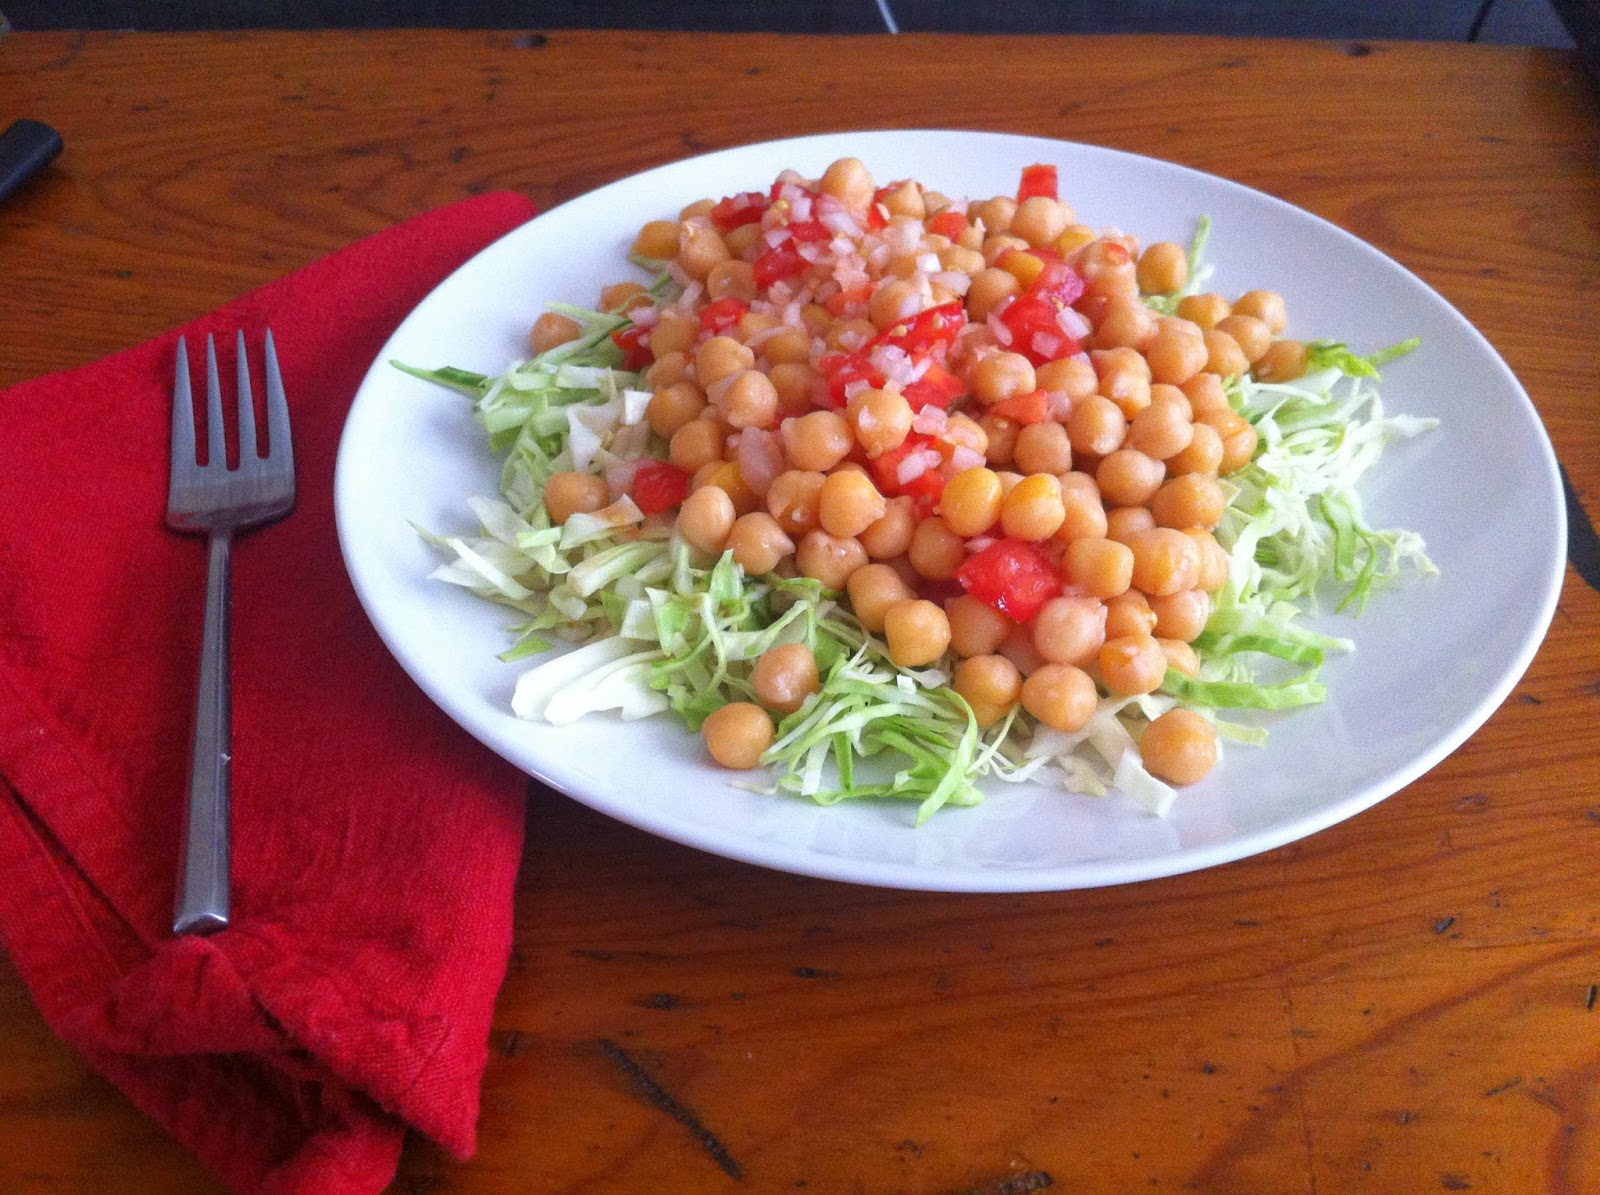 $0.45 dinner, chickpea onion tomato and cabbage salad